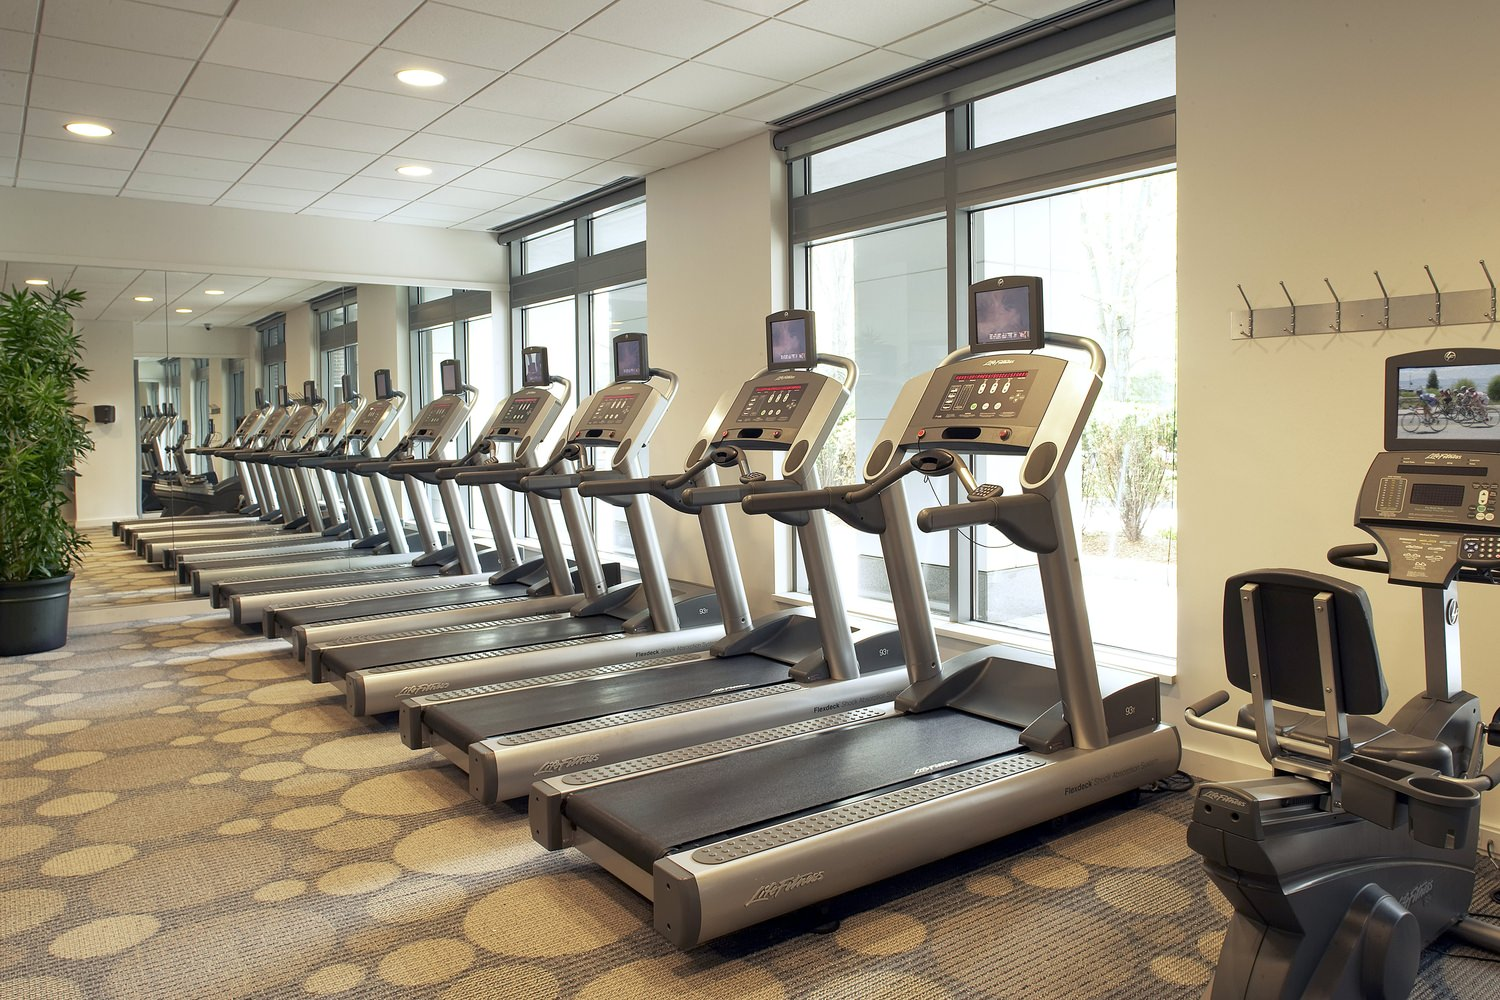 A row of treadmills and other exercise machines inside of a gym with tiled floors.